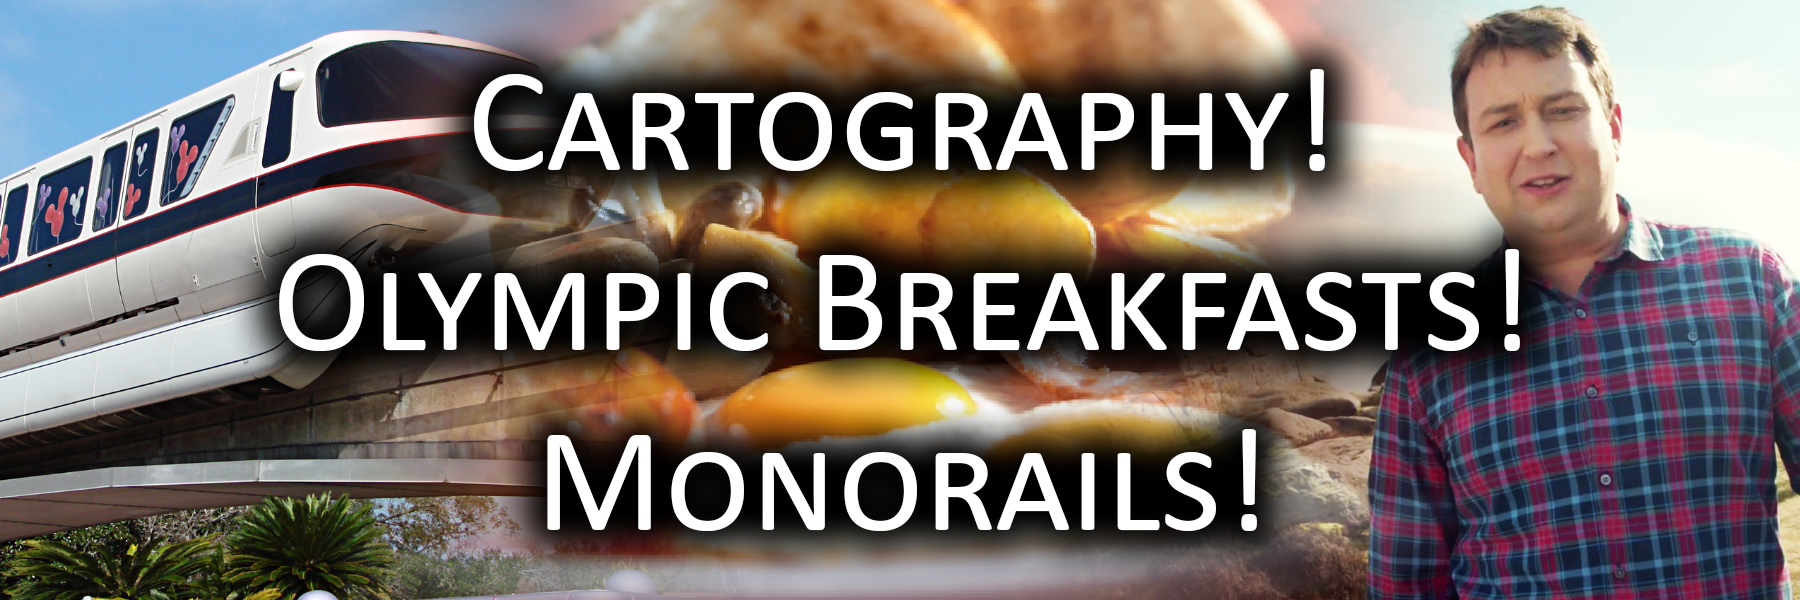 Cartography! Olympic Breakfasts! Monorails!